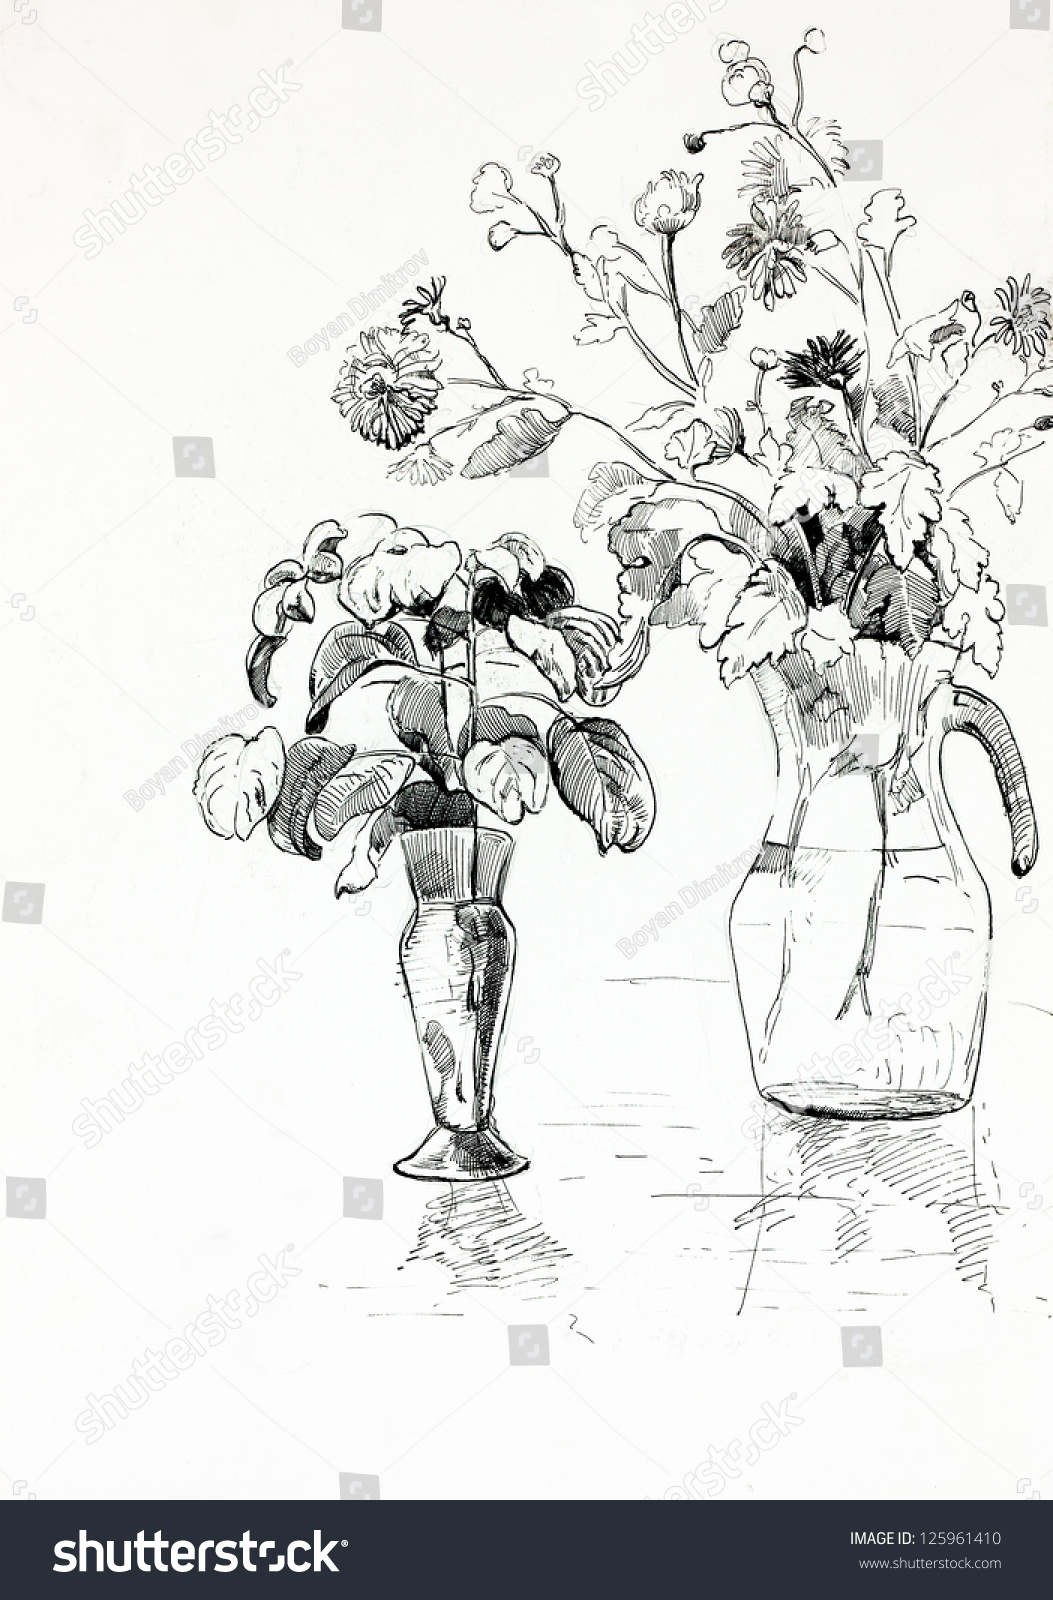 Original pencil drawing charcoal hand drawn stock illustration original pencil or drawing charcoal and hand drawn painting or working sketch of vase or reviewsmspy